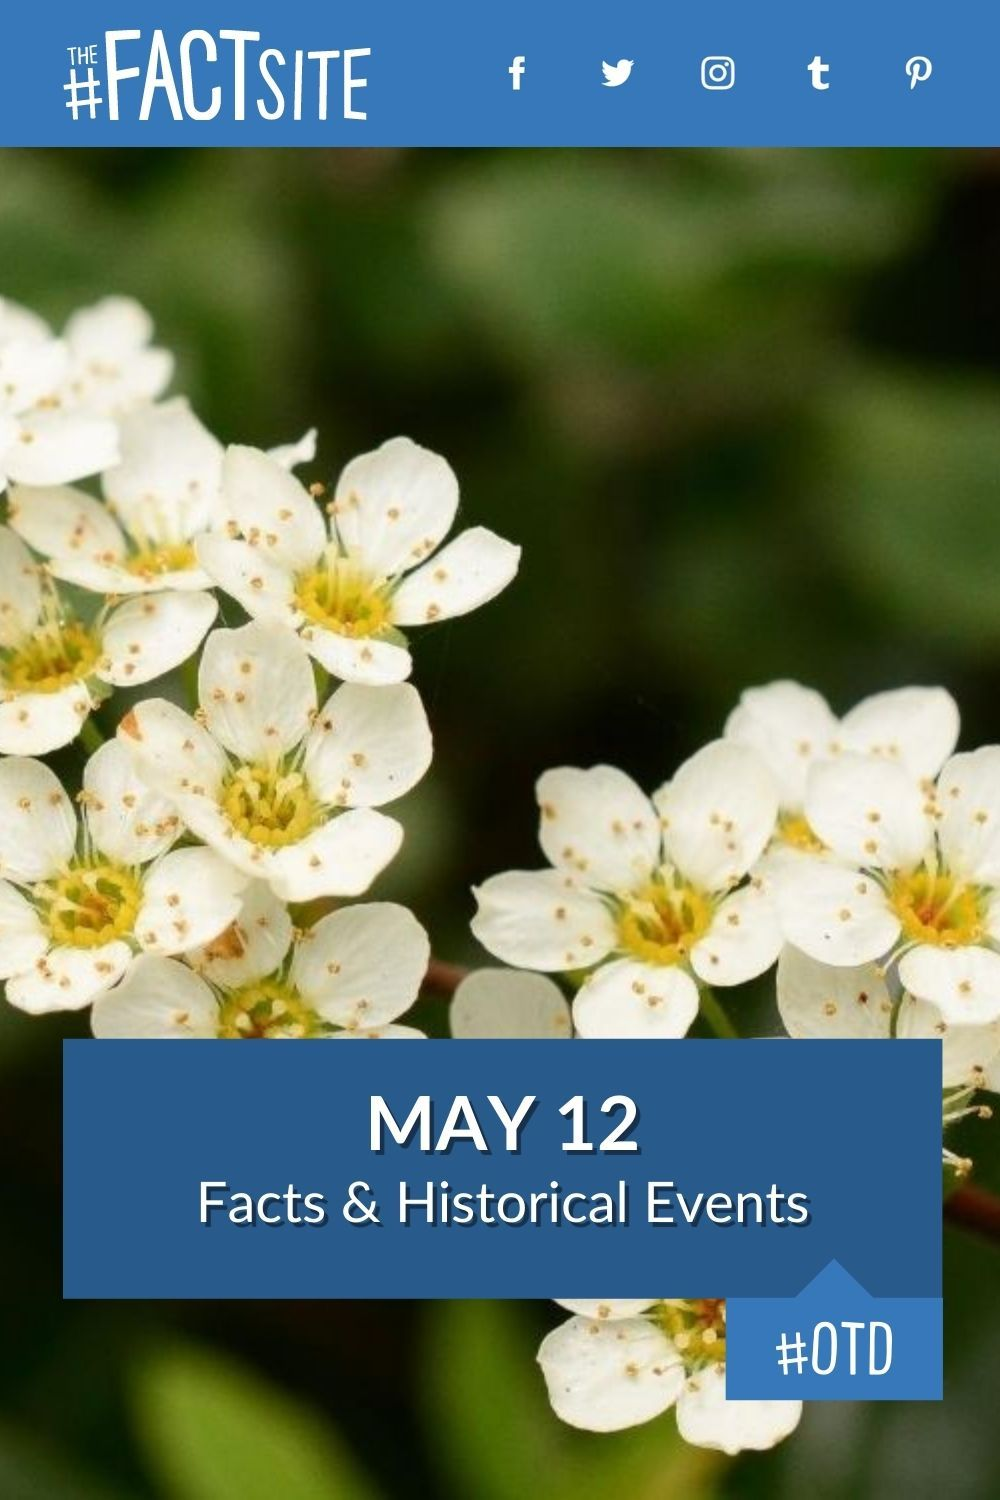 Facts & Historic Events That Happened on May 12